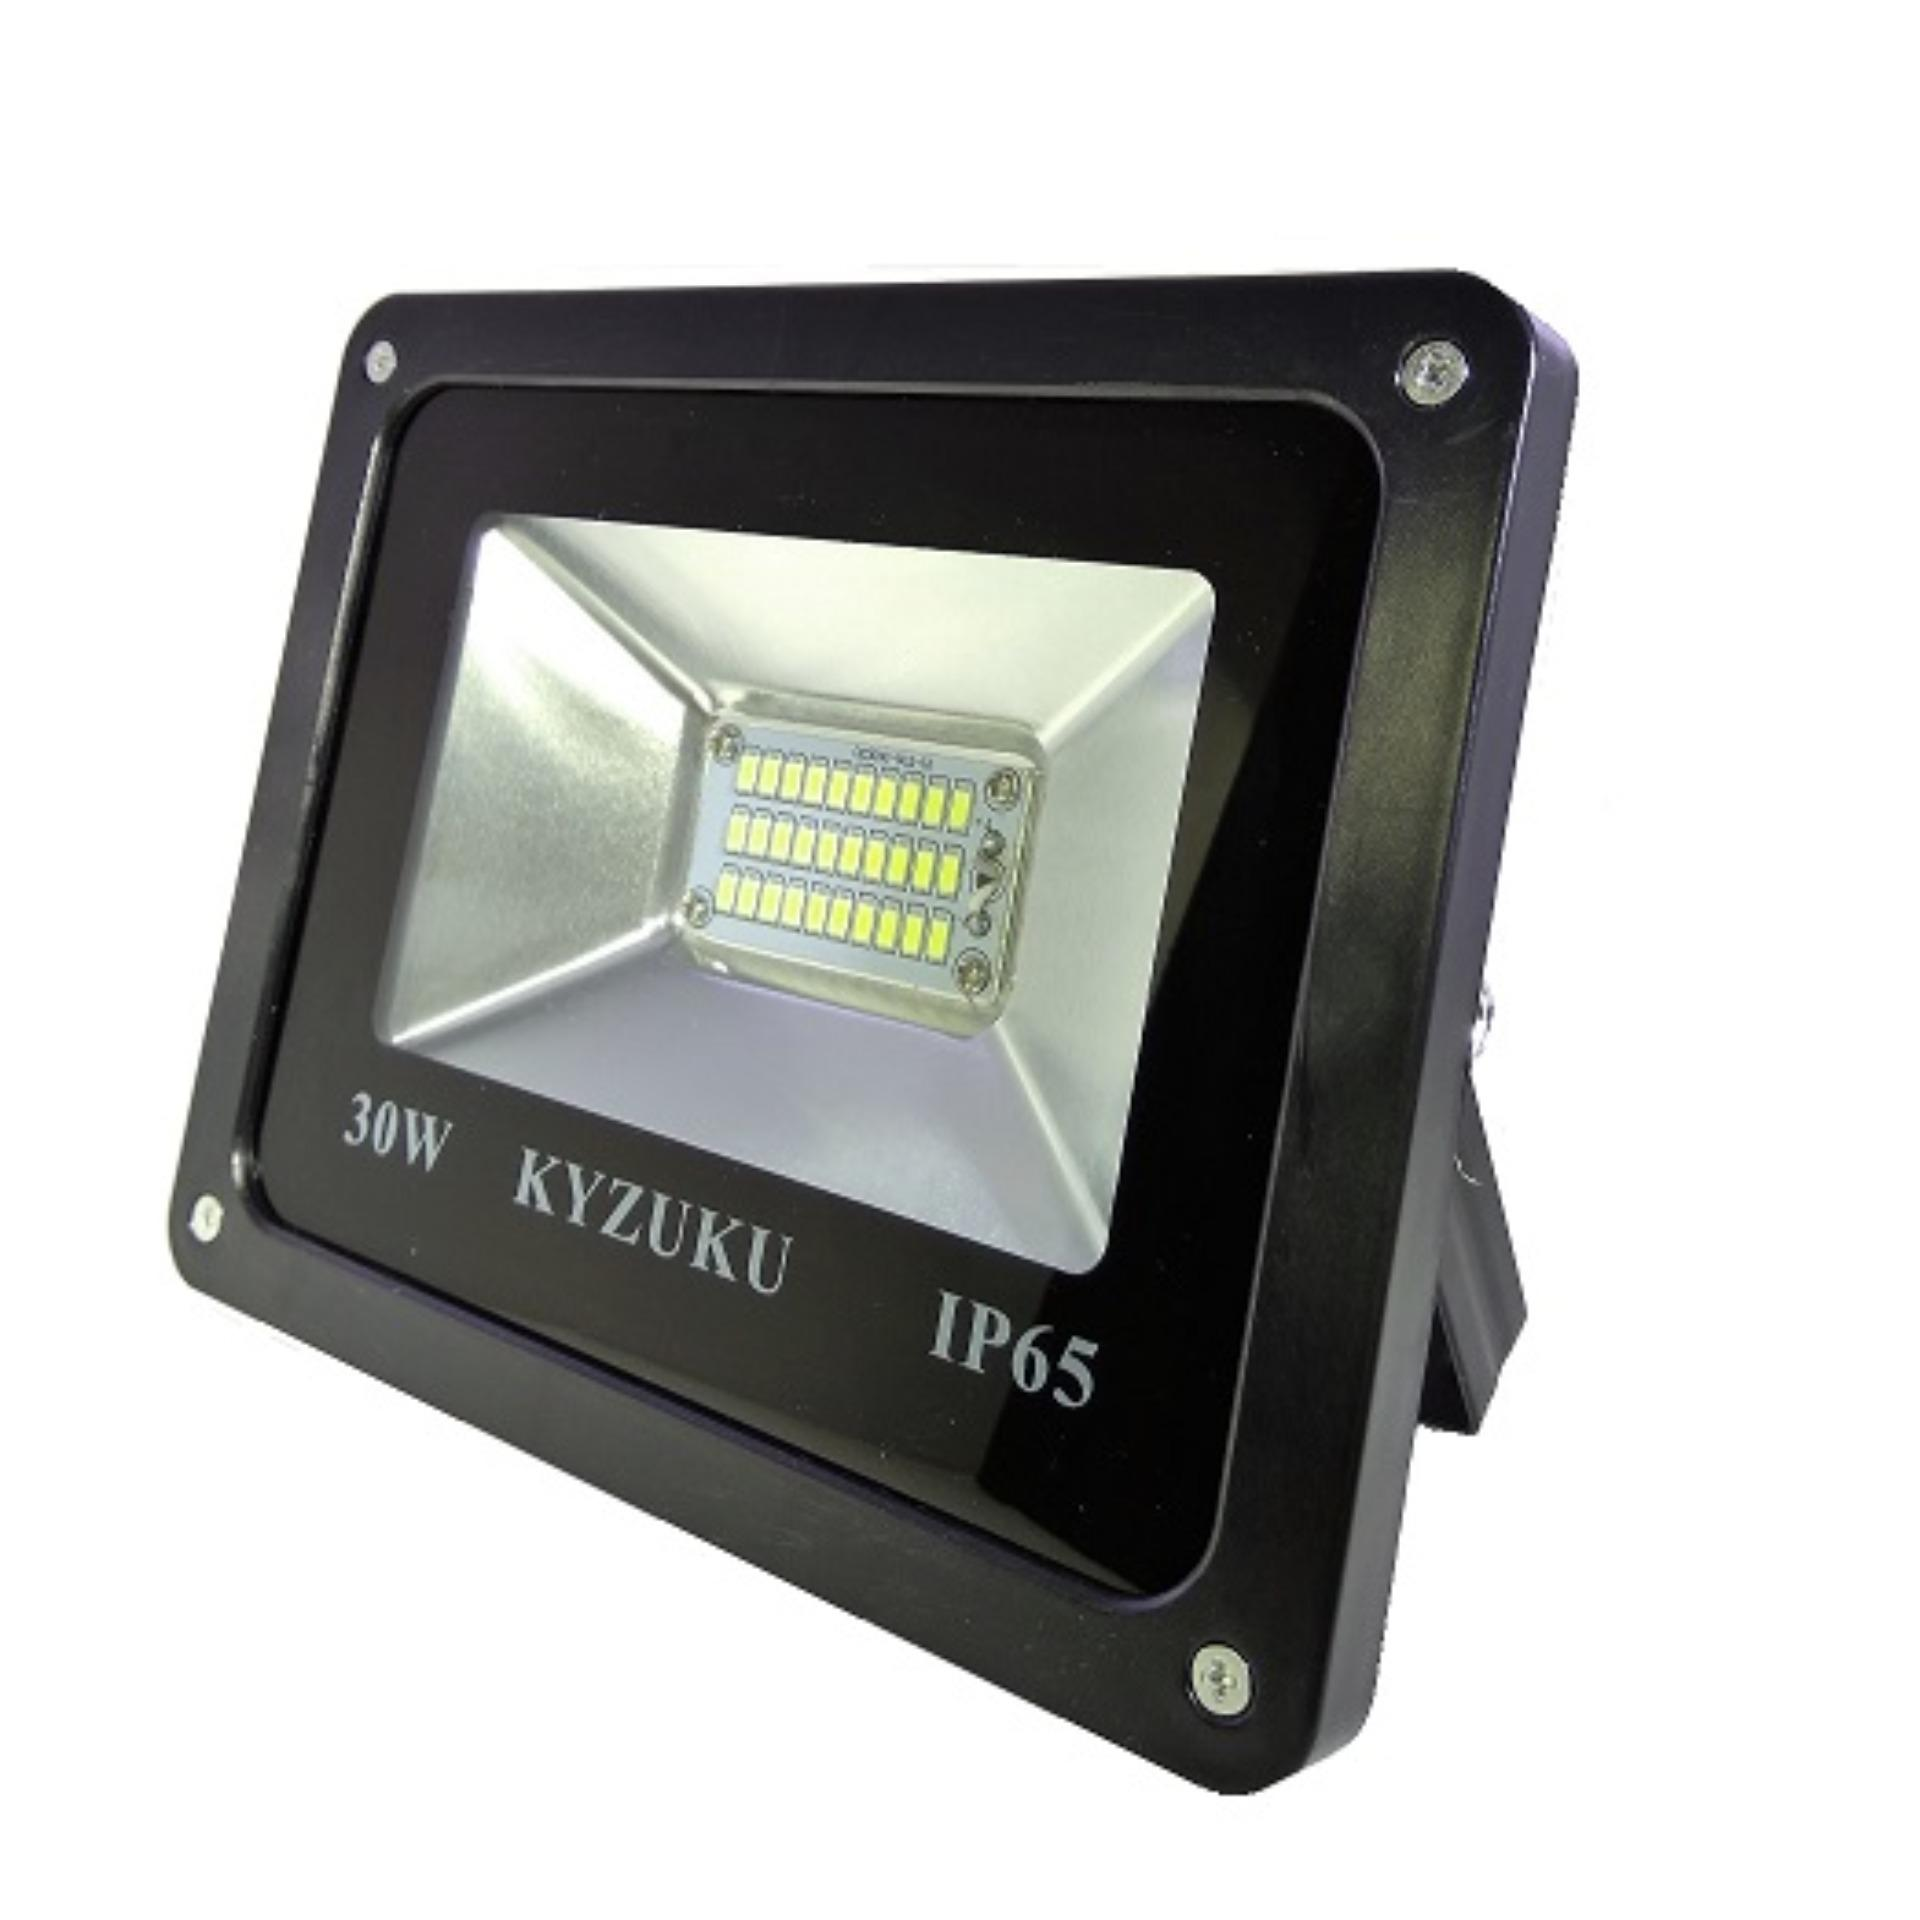 Harga Termurah Kyzuku Led Outdoor Light Lampu Sorot 30 Watt Ip65